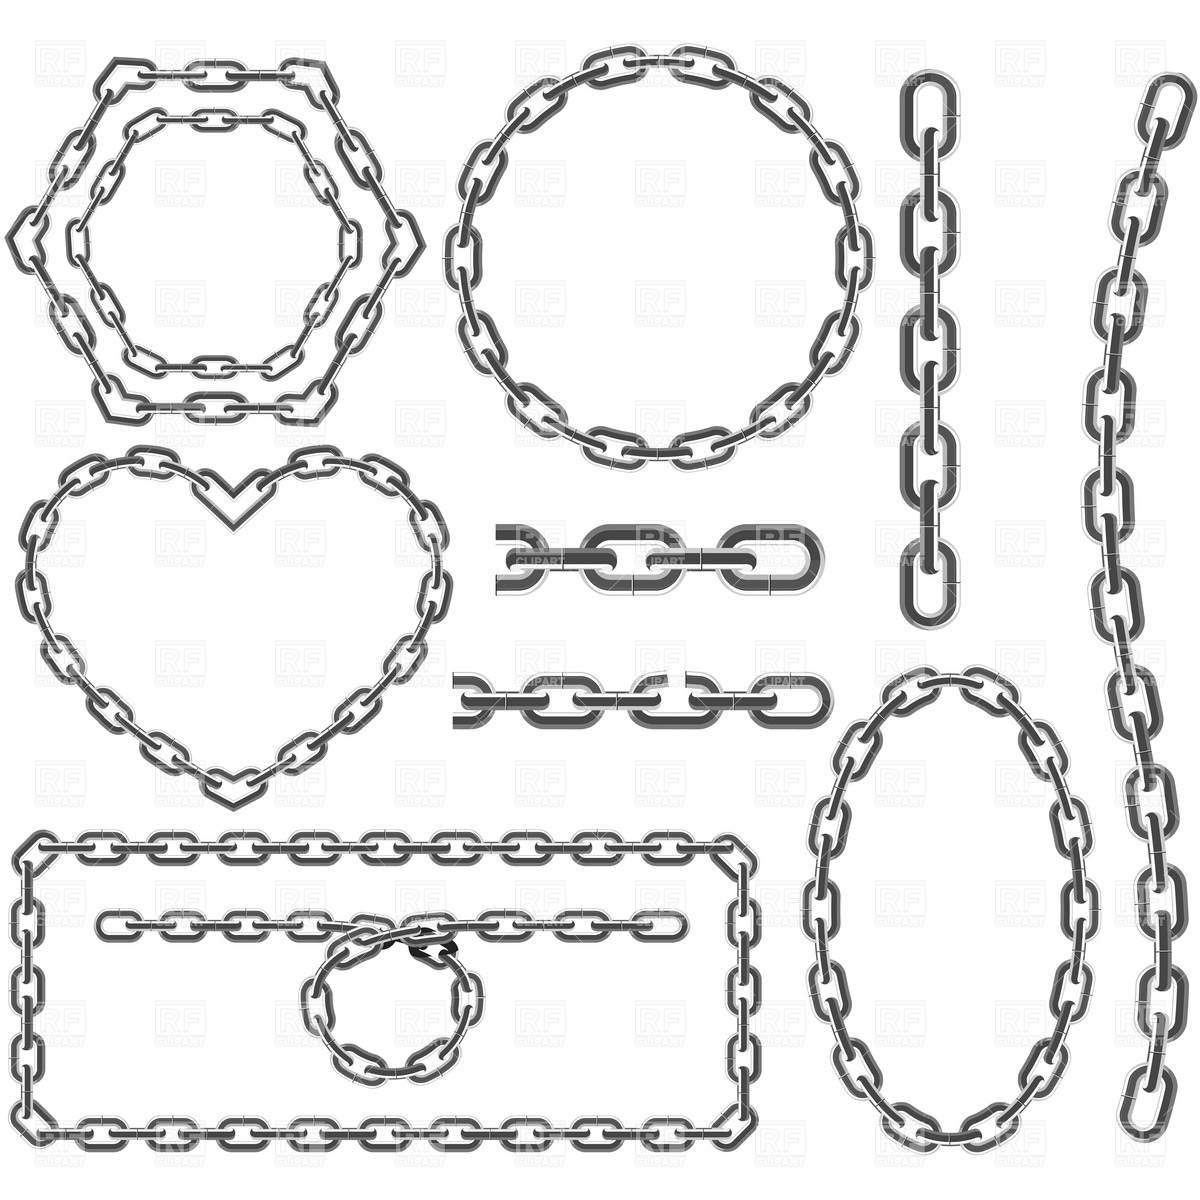 Chain Circle Clipart.